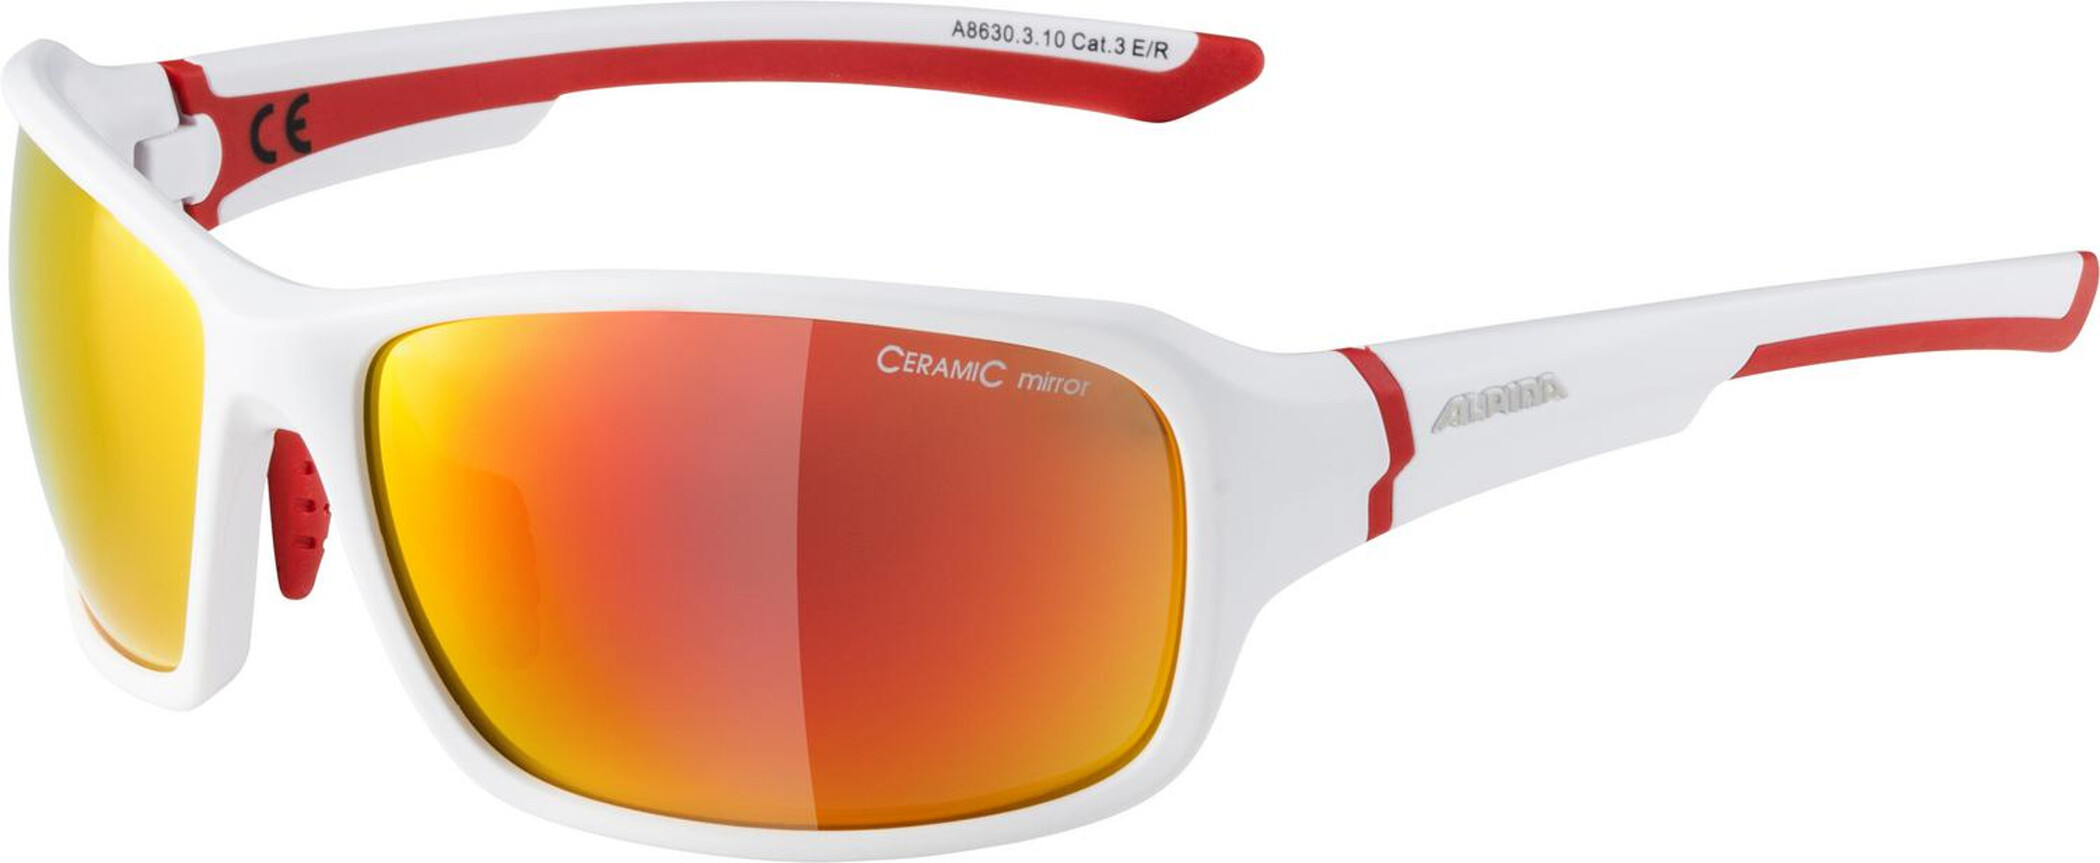 Alpina Lyron Cykelbriller, white matt-red (2019) | Glasses